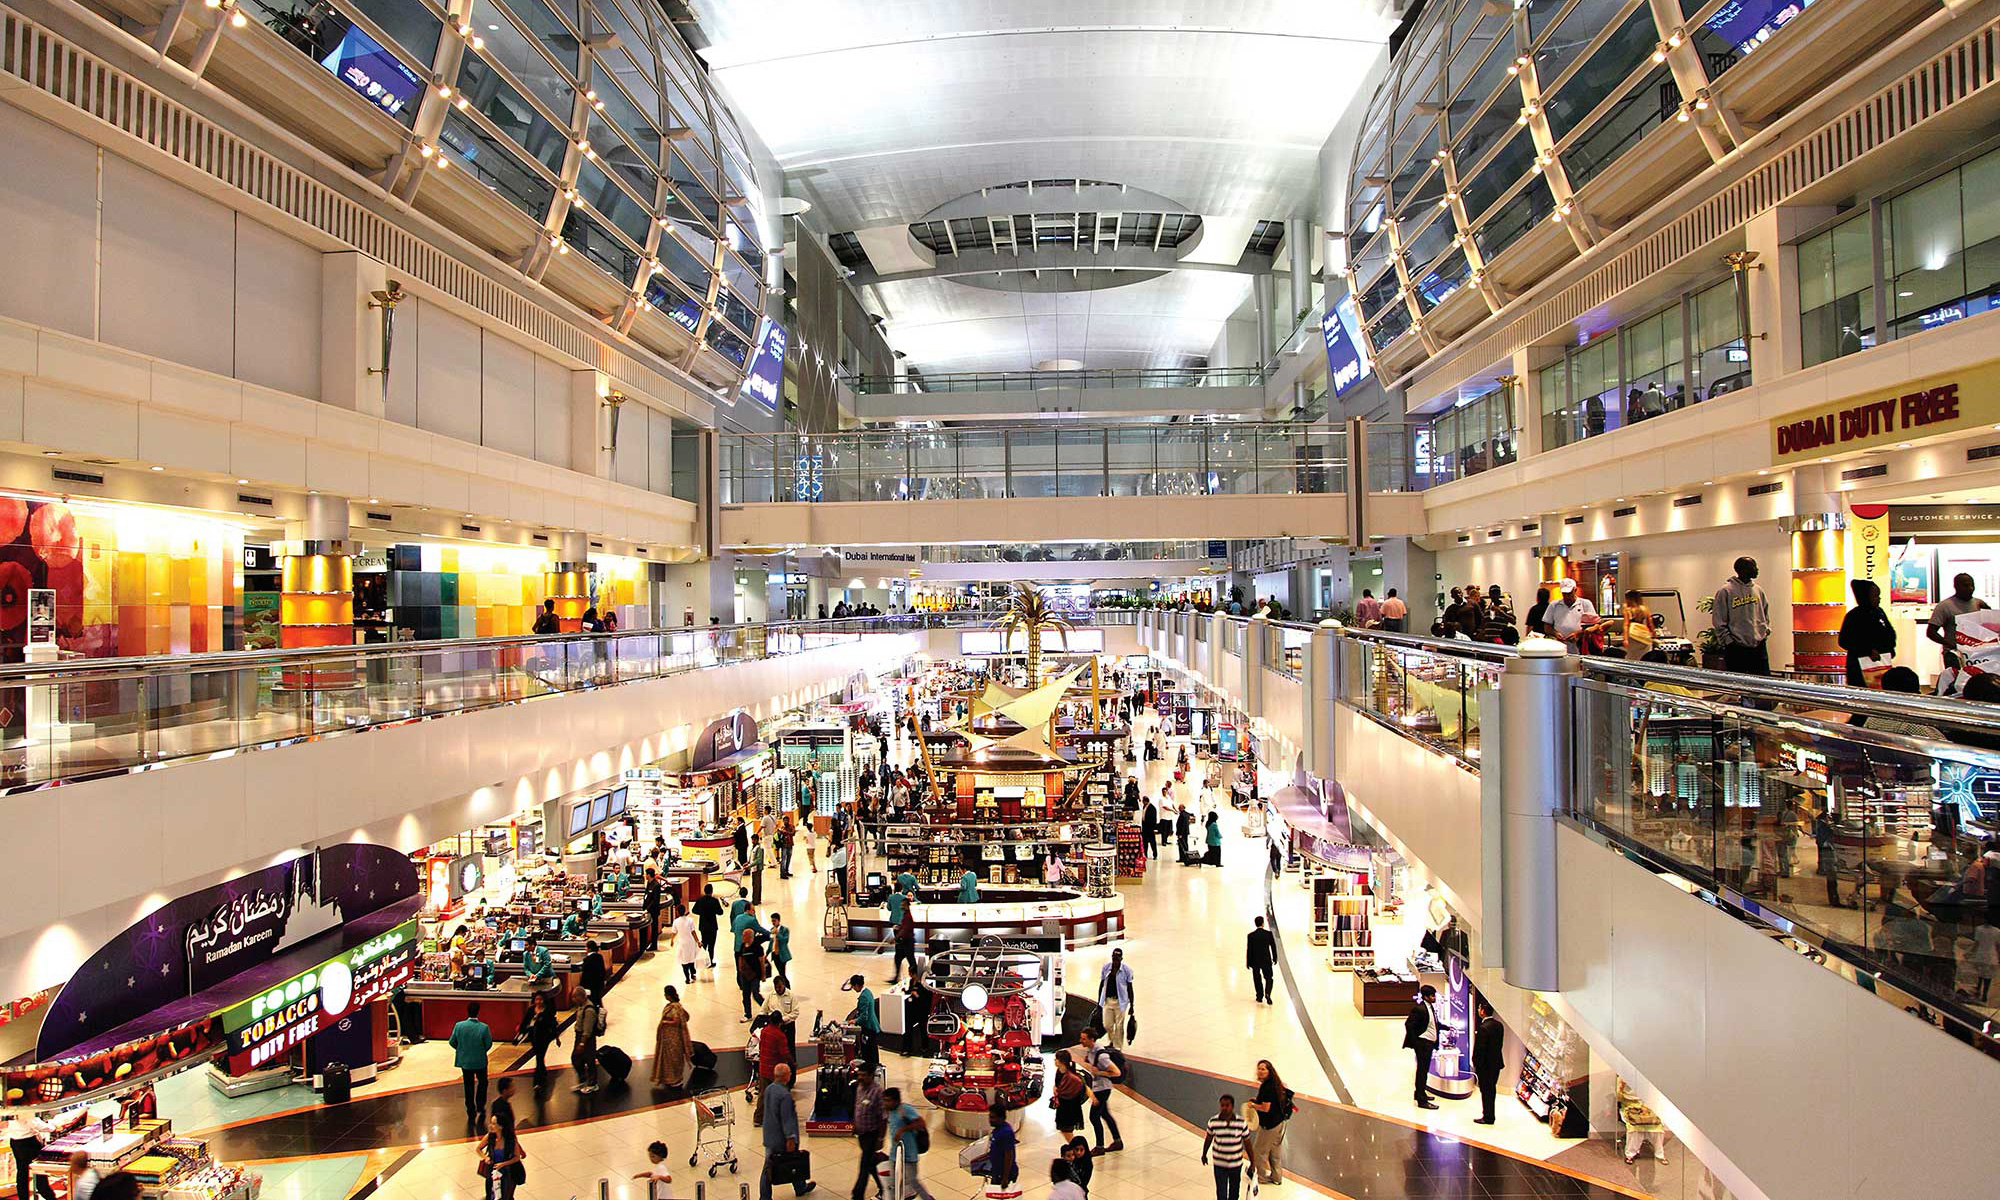 Dubai Duty Free Shopping | DDF has a